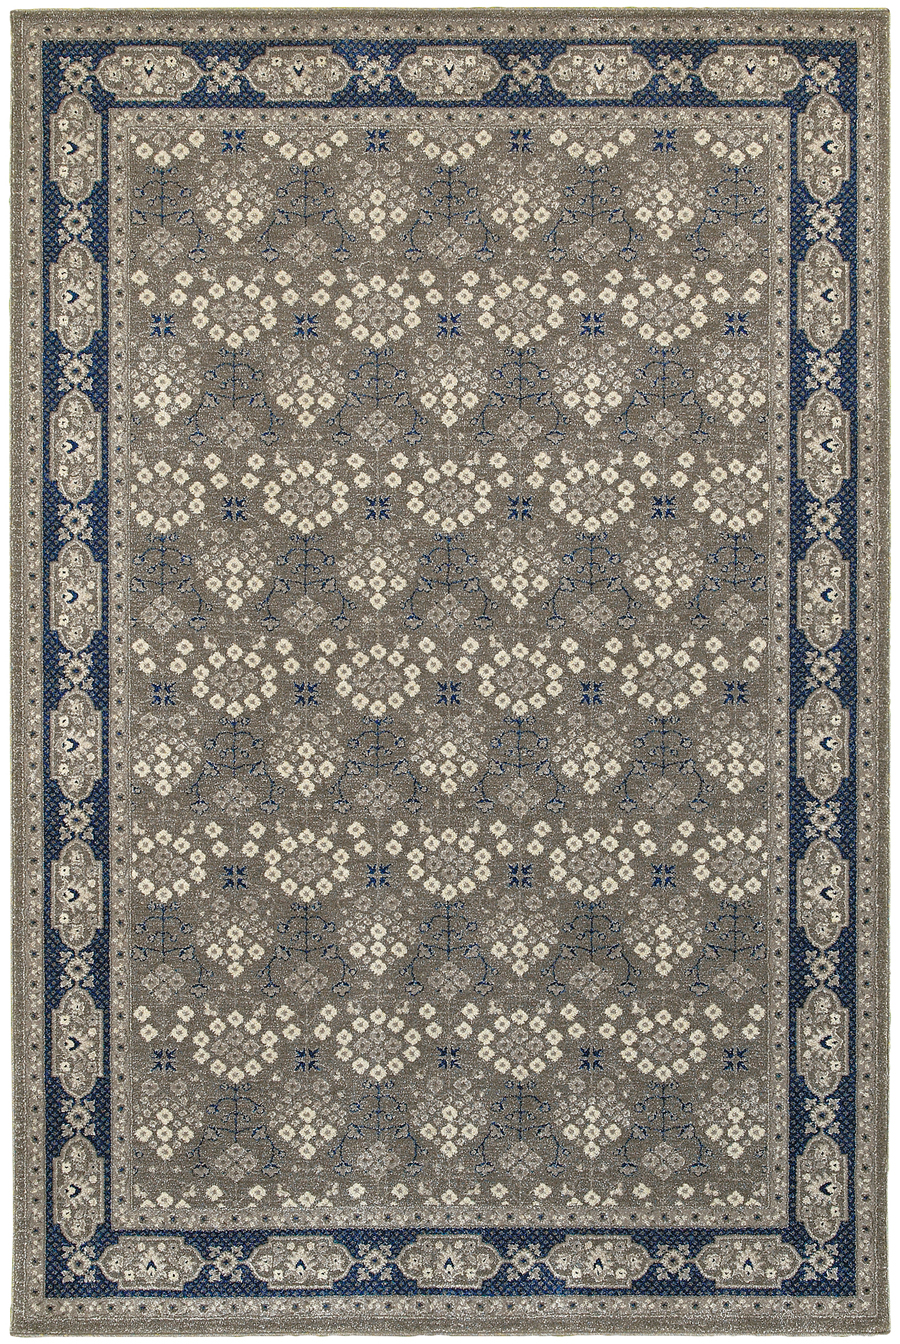 Oriental Weavers Sphinx Richmond 119U3 Rug